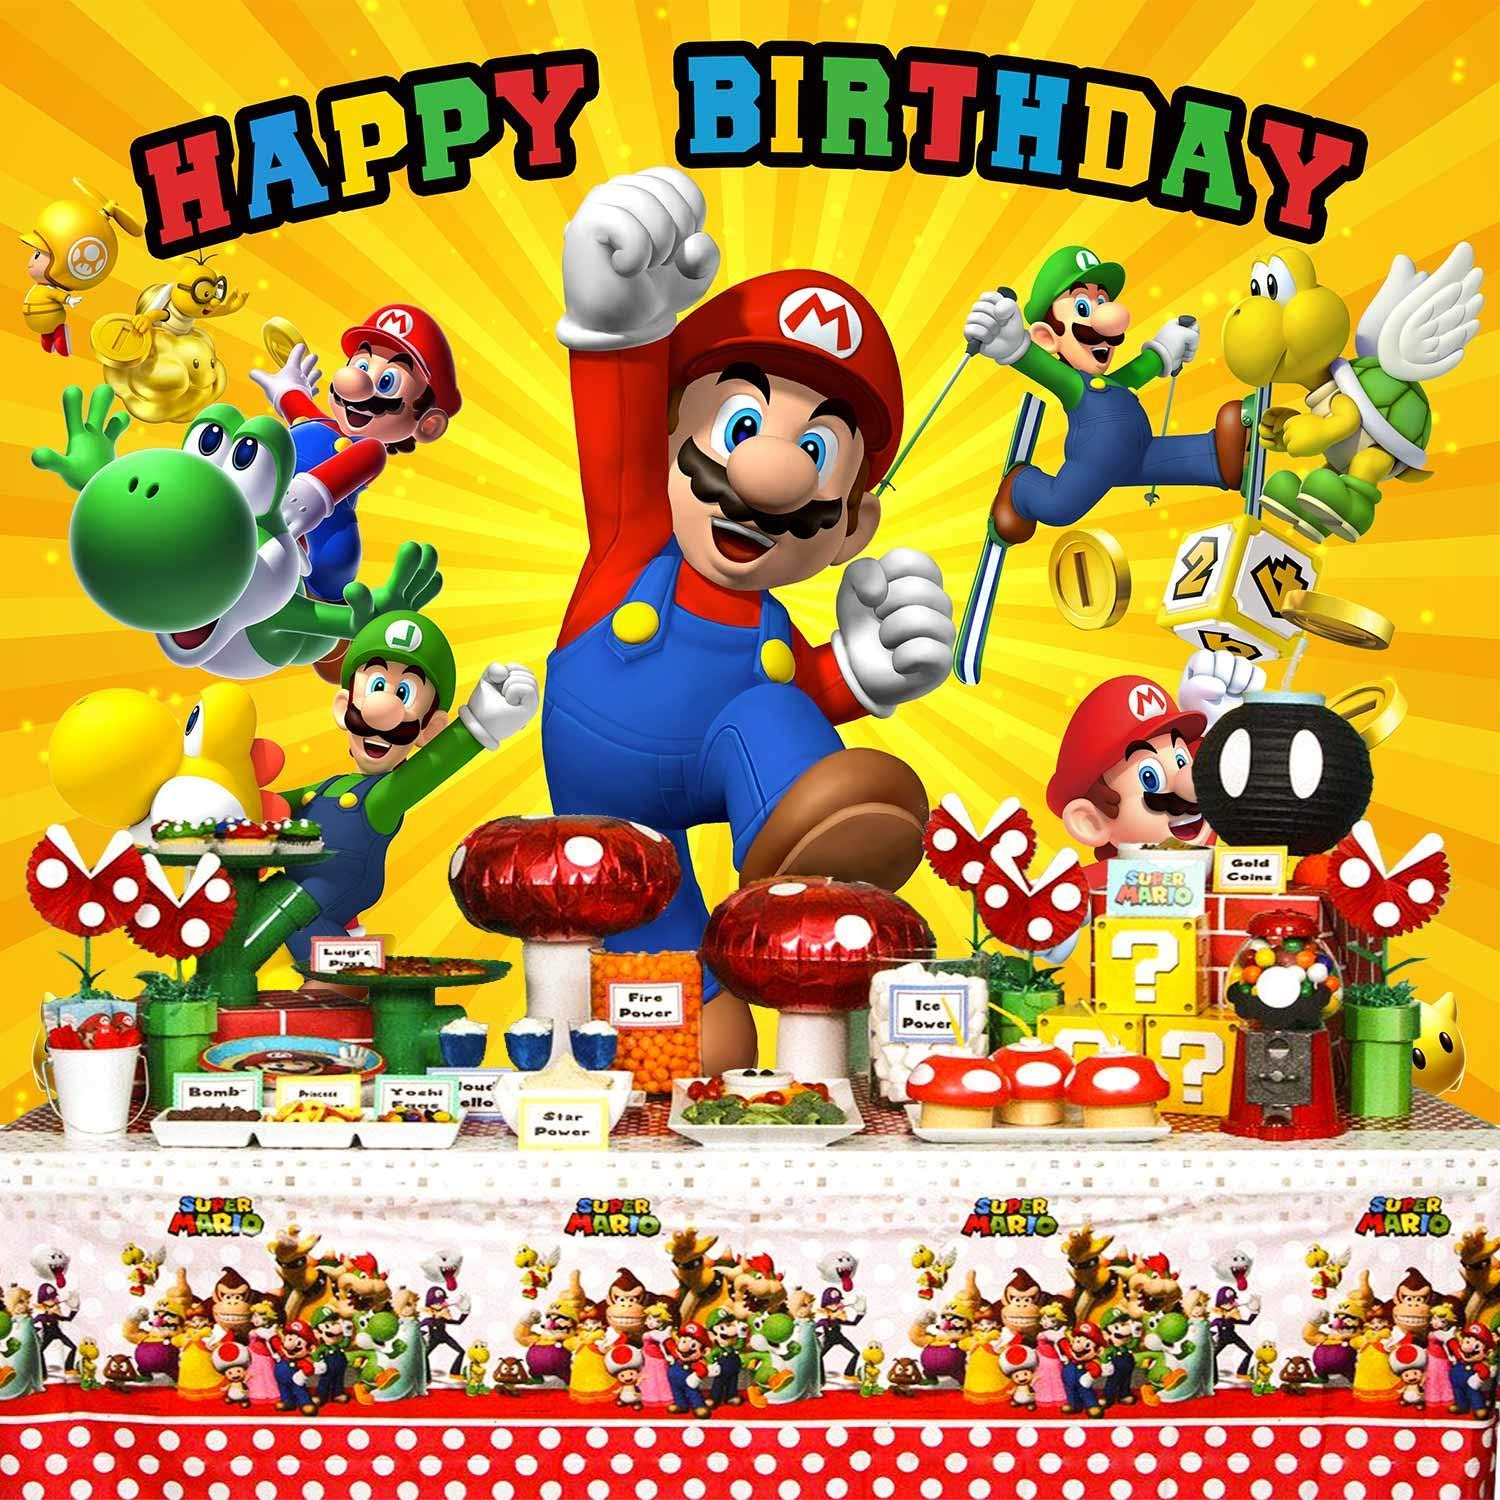 Super Mario Backdrop, Super Mario Background,Super Uncle Bros with  Mushrooms Photography Background Cartoon Kids Children Birthday Party Banner.